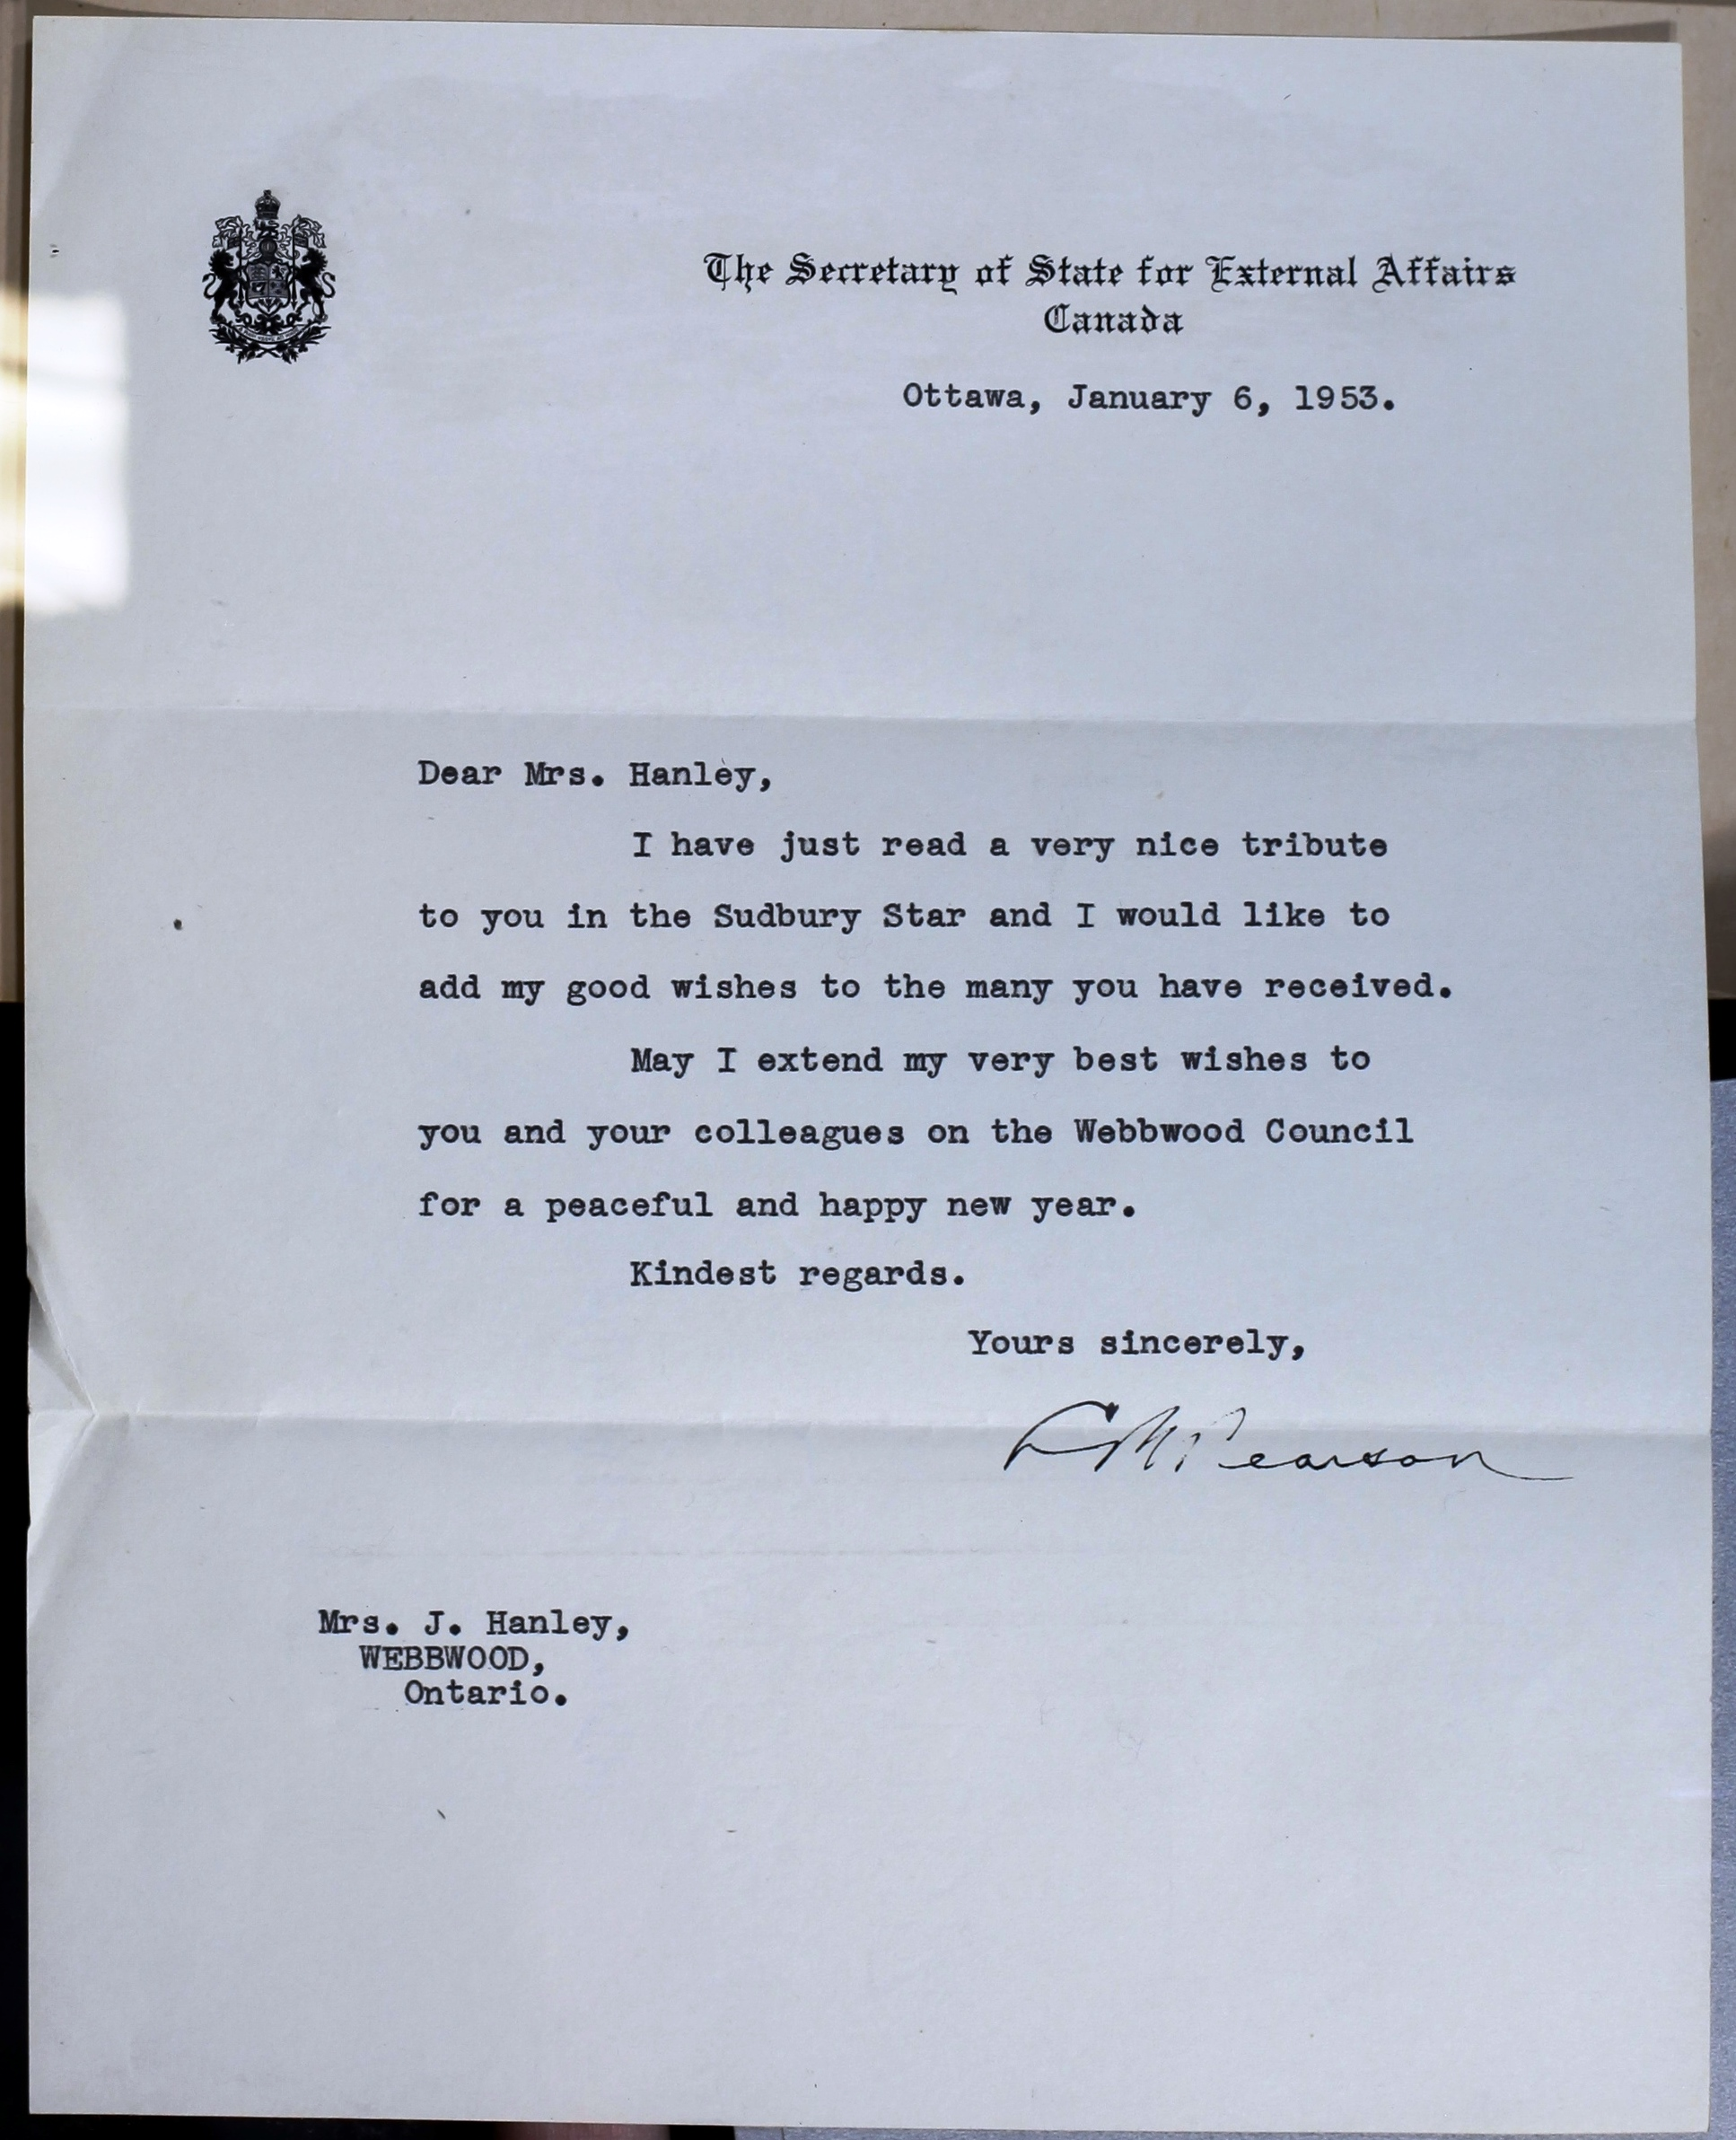 Letter from Secretary of State for External Affairs and future Prime Minister, Lester B. Pearson, congratulating Hanley on her years of service, 6 January 1953.